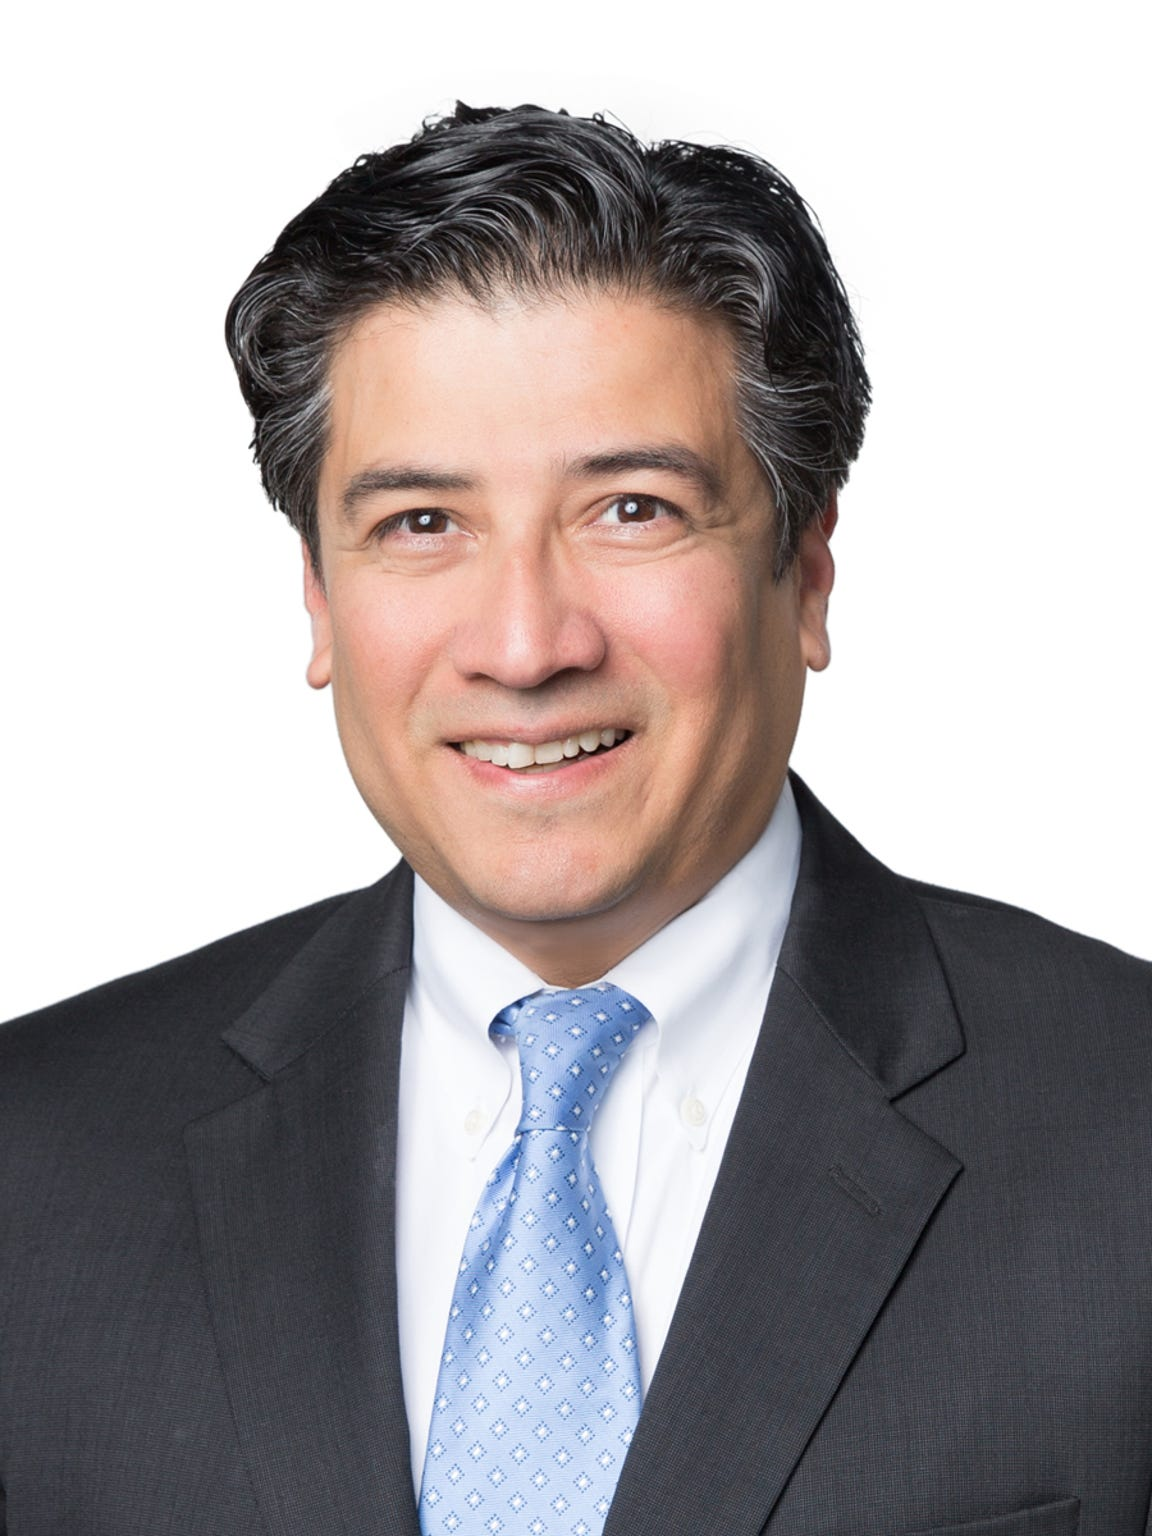 David S. Morales has been nominated by President Donald Trump for a federal judge seat in the Southern District of Texas.